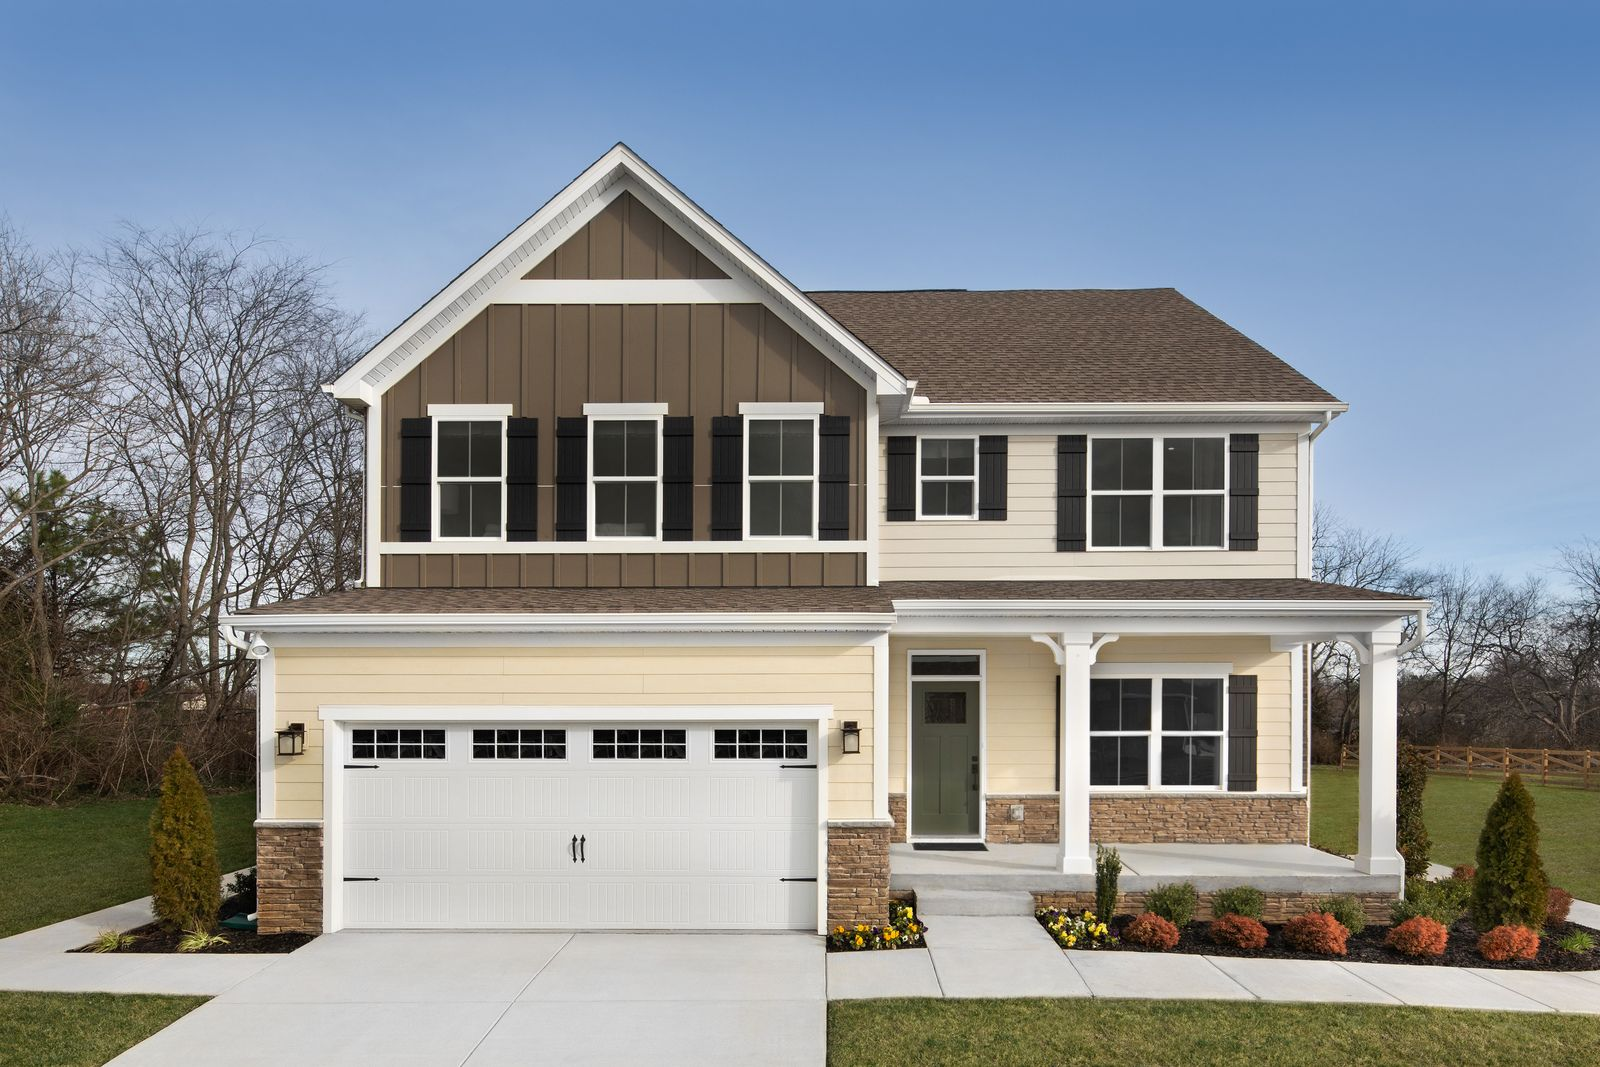 Best New Home Value in Williamson County:Located across the street from Longview Rec Center & Elementary, minutes from The Crossings Shopping Center.Schedule your visit to check out our homesites!